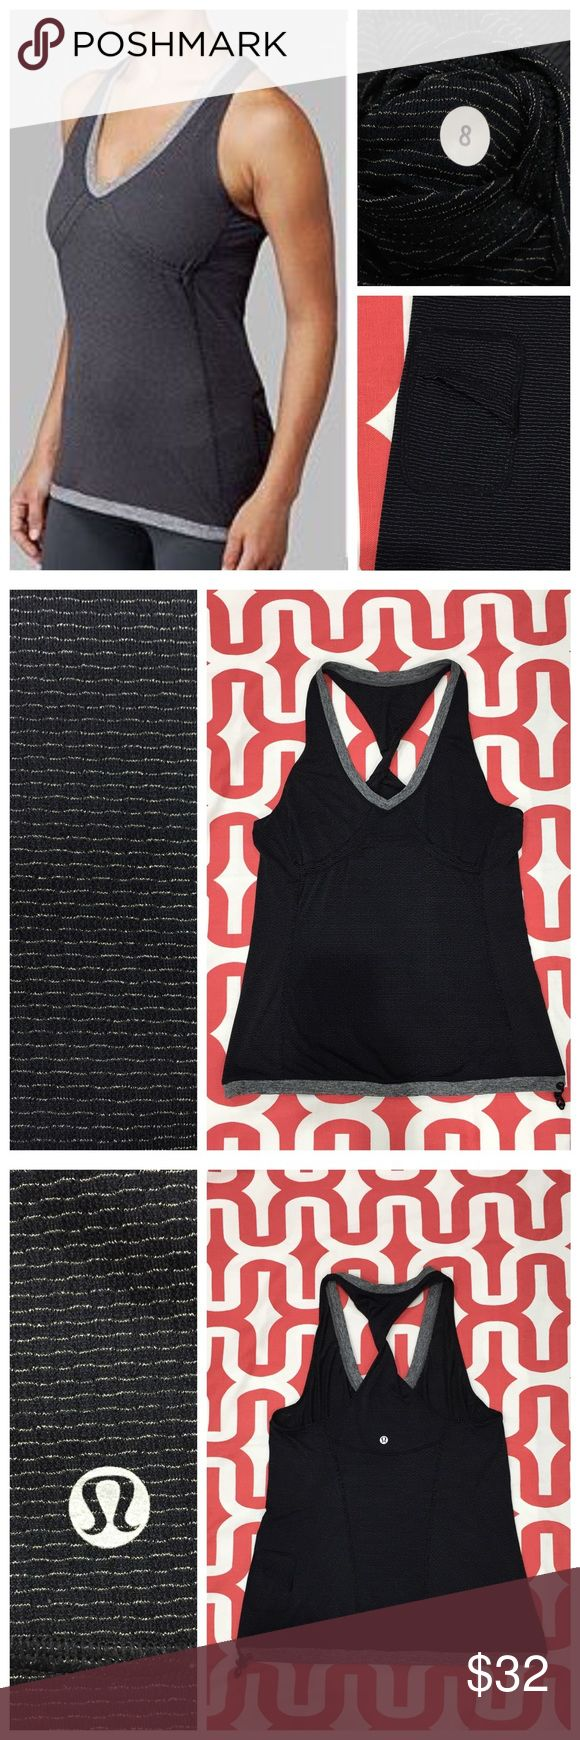 Lululemon Personal Best Singlet Black. Excellent Preloved condition. Light weight singlet. Layer over any bra. Silverescent technology. Circle mesh in high sweat areas. Cinchable drawcord hem. Flat back hip pocket. Twist detailing in back - see stock photo of wish blue tank. No trades. No PayPal. Price firm unless bundled. lululemon athletica Tops Tank Tops